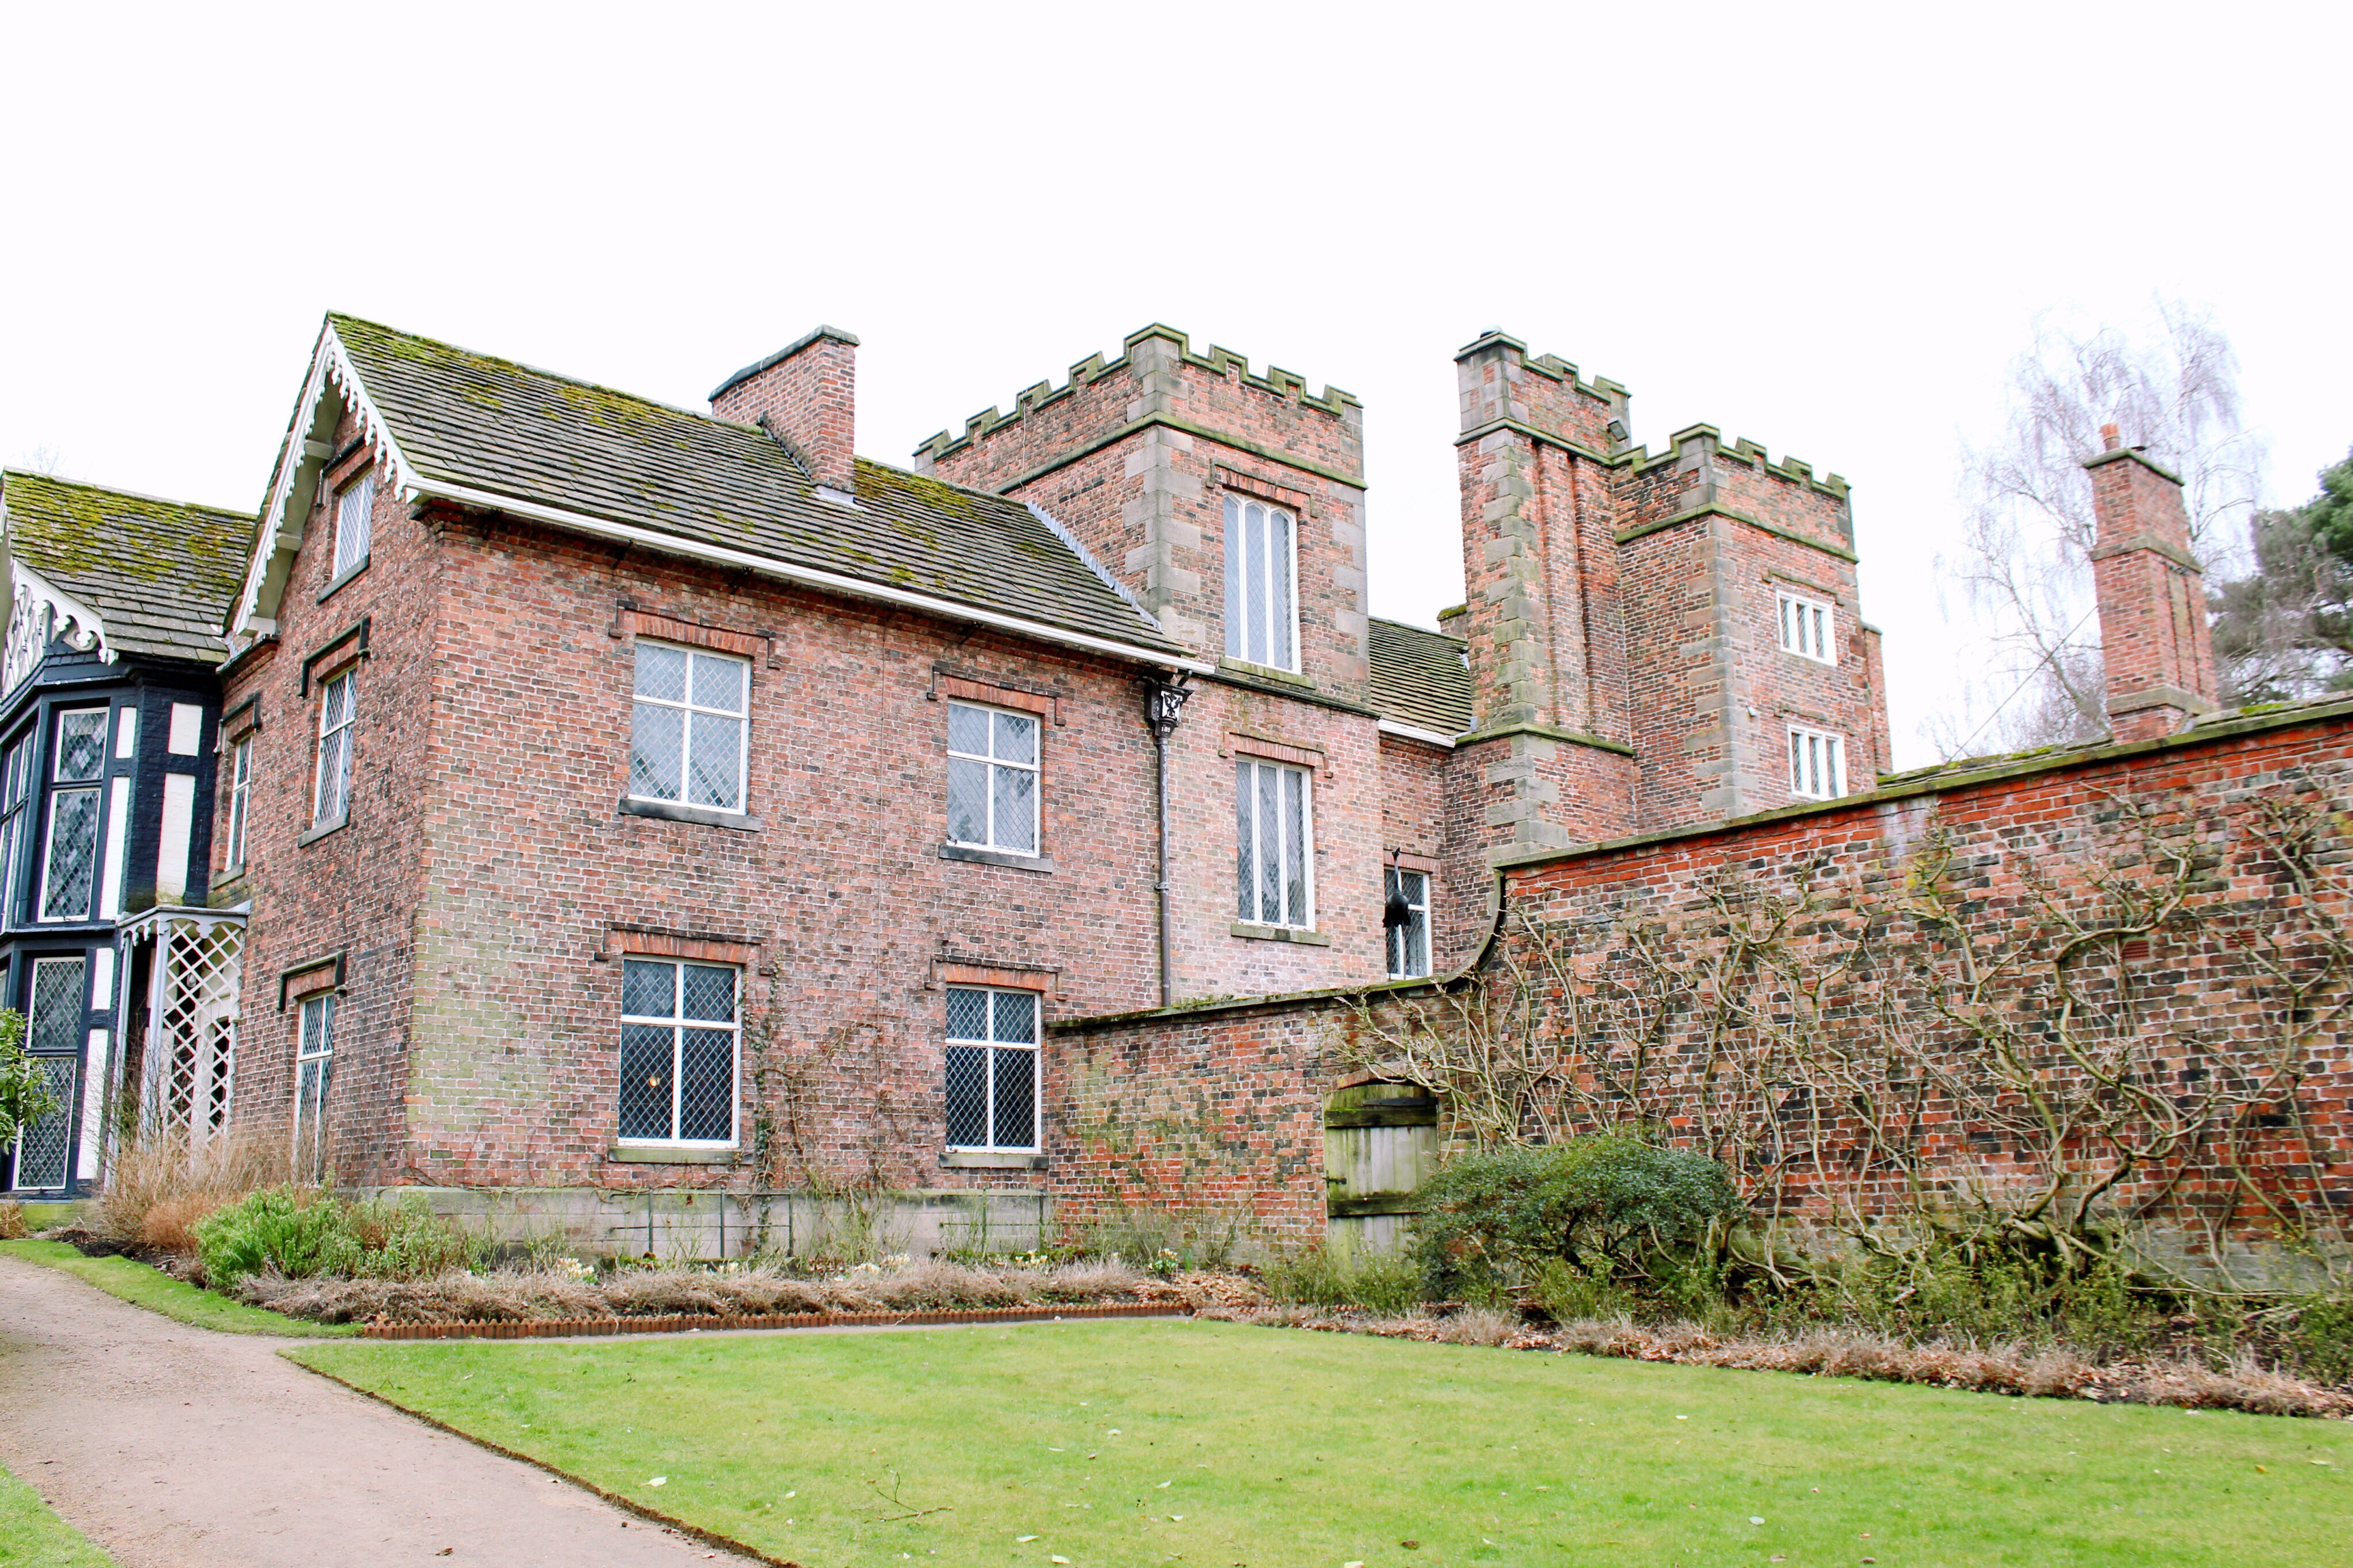 The Old Hall in Rufford